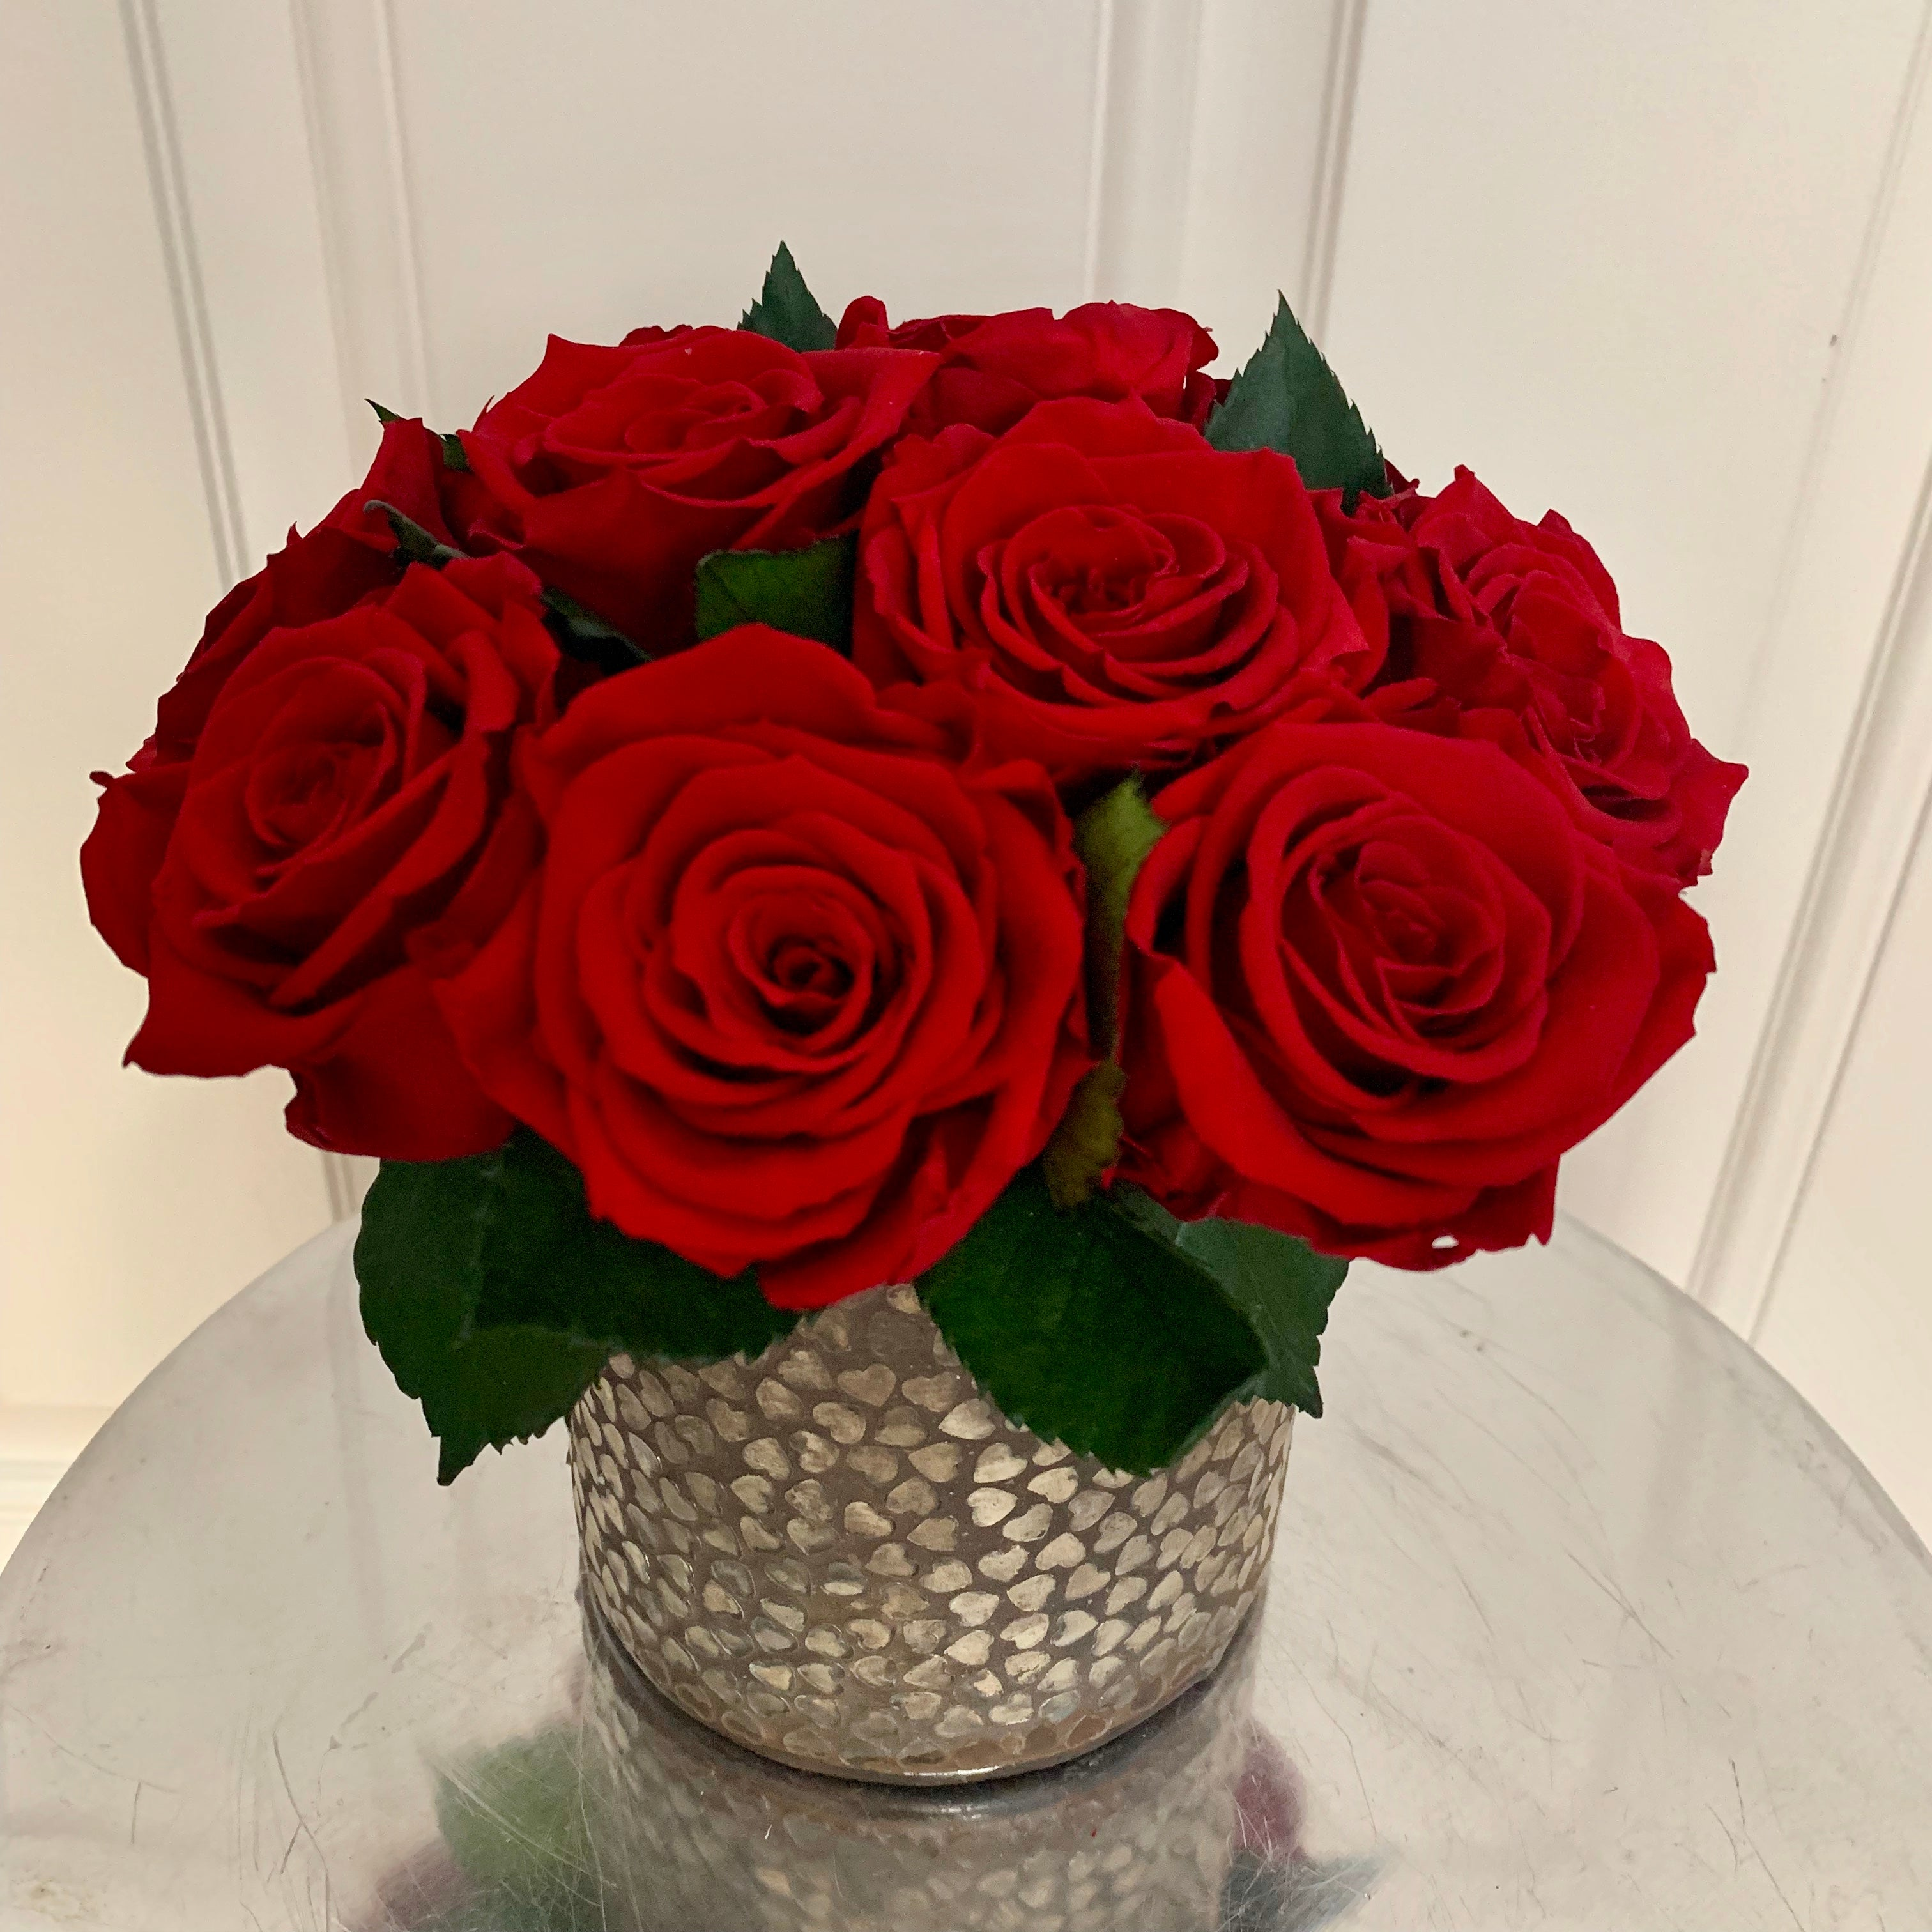 Everlasting Roses in a Rustic Heart Vase